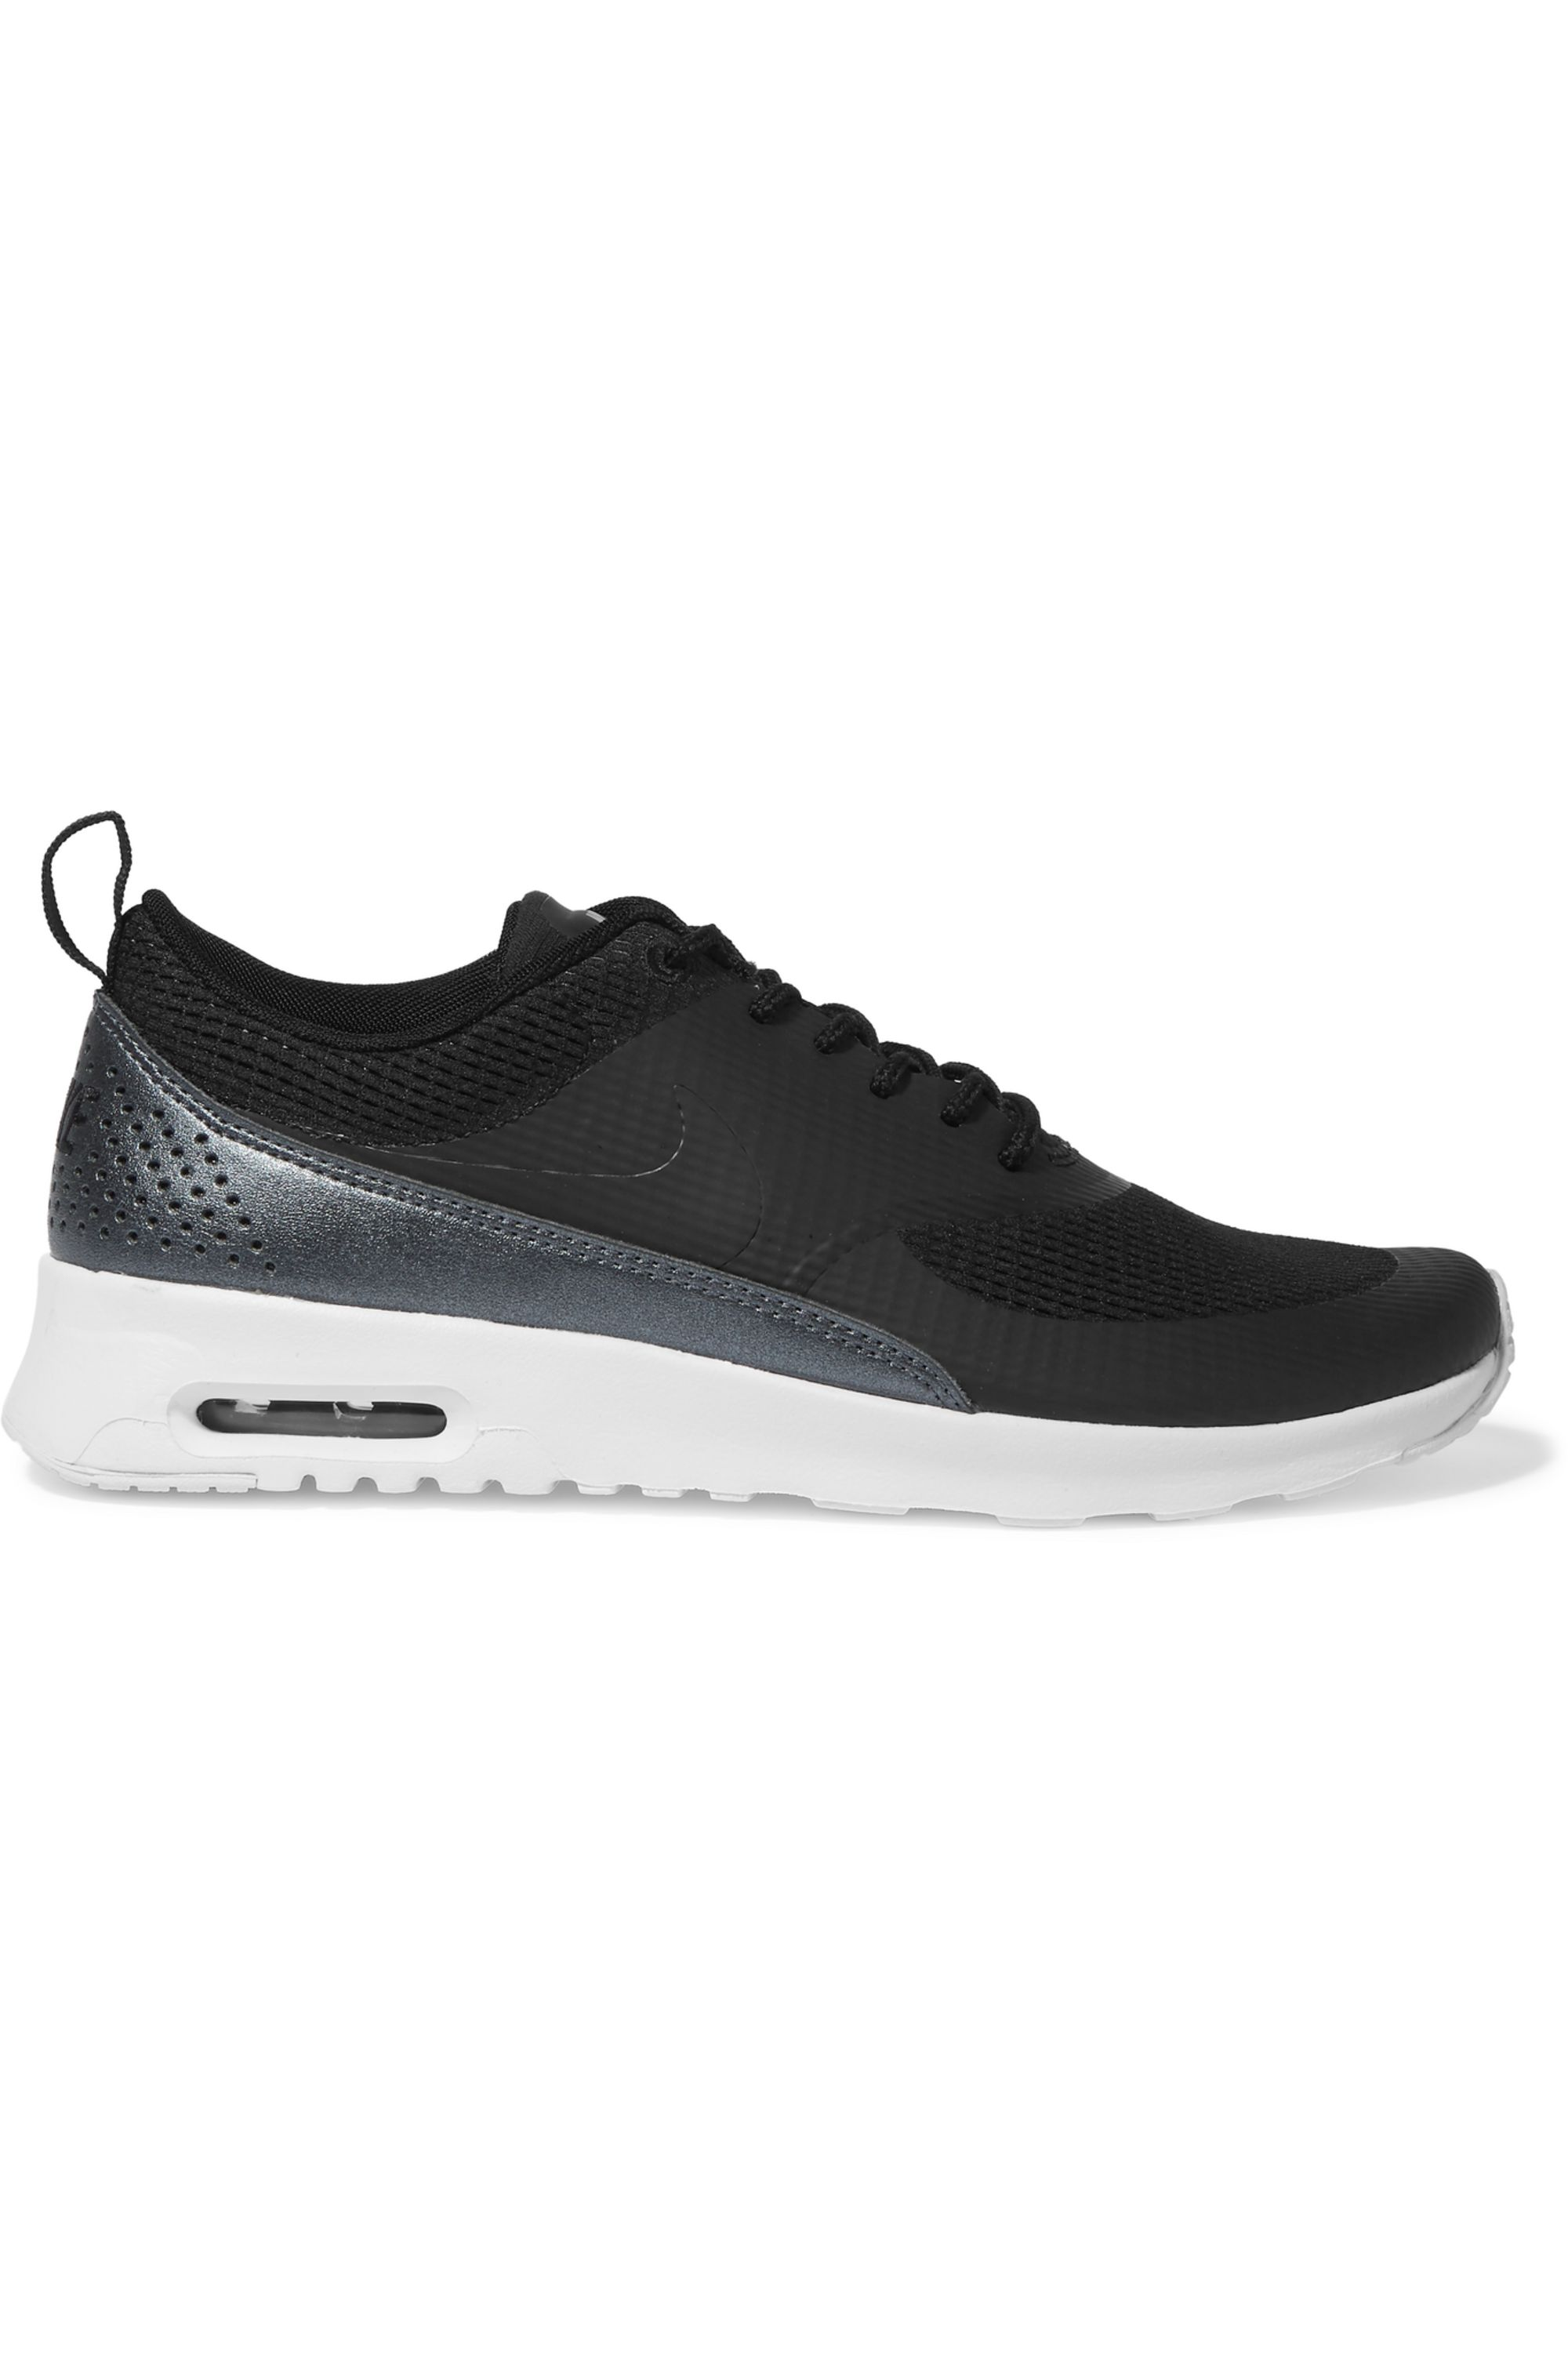 Nike Air Max Thea mesh and faux leather sneakers